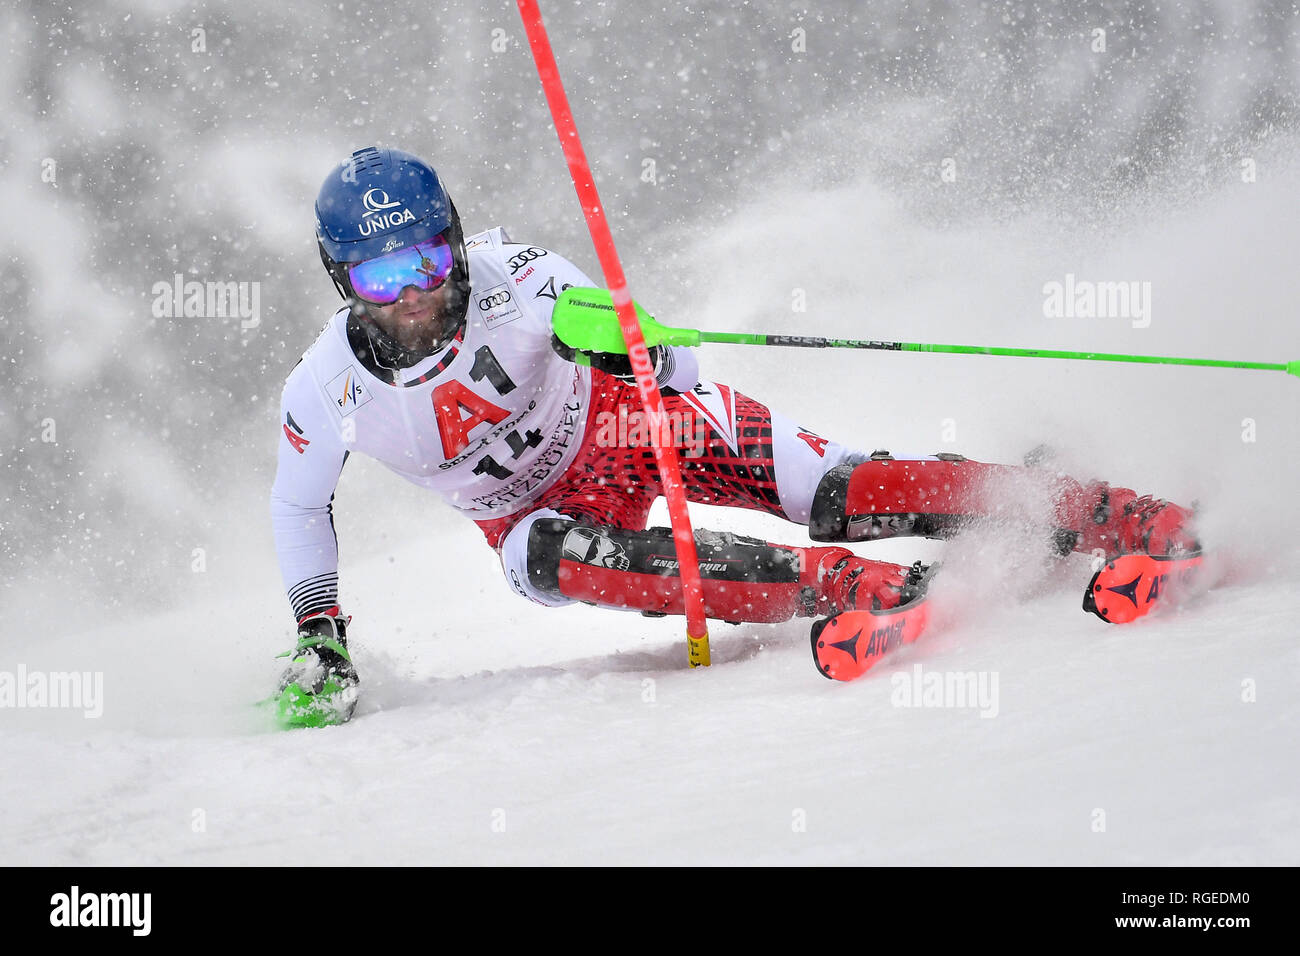 Marco SCHWARZ (AUT), action, individual action, single image, cut out, full body shot, whole figure. Alpine skiing, race, 79. Hahnenkamm race 2019, men's slalom, men, Kitzbuehel, Hahnenkamm, 26.01.2019. | usage worldwide Stock Photo